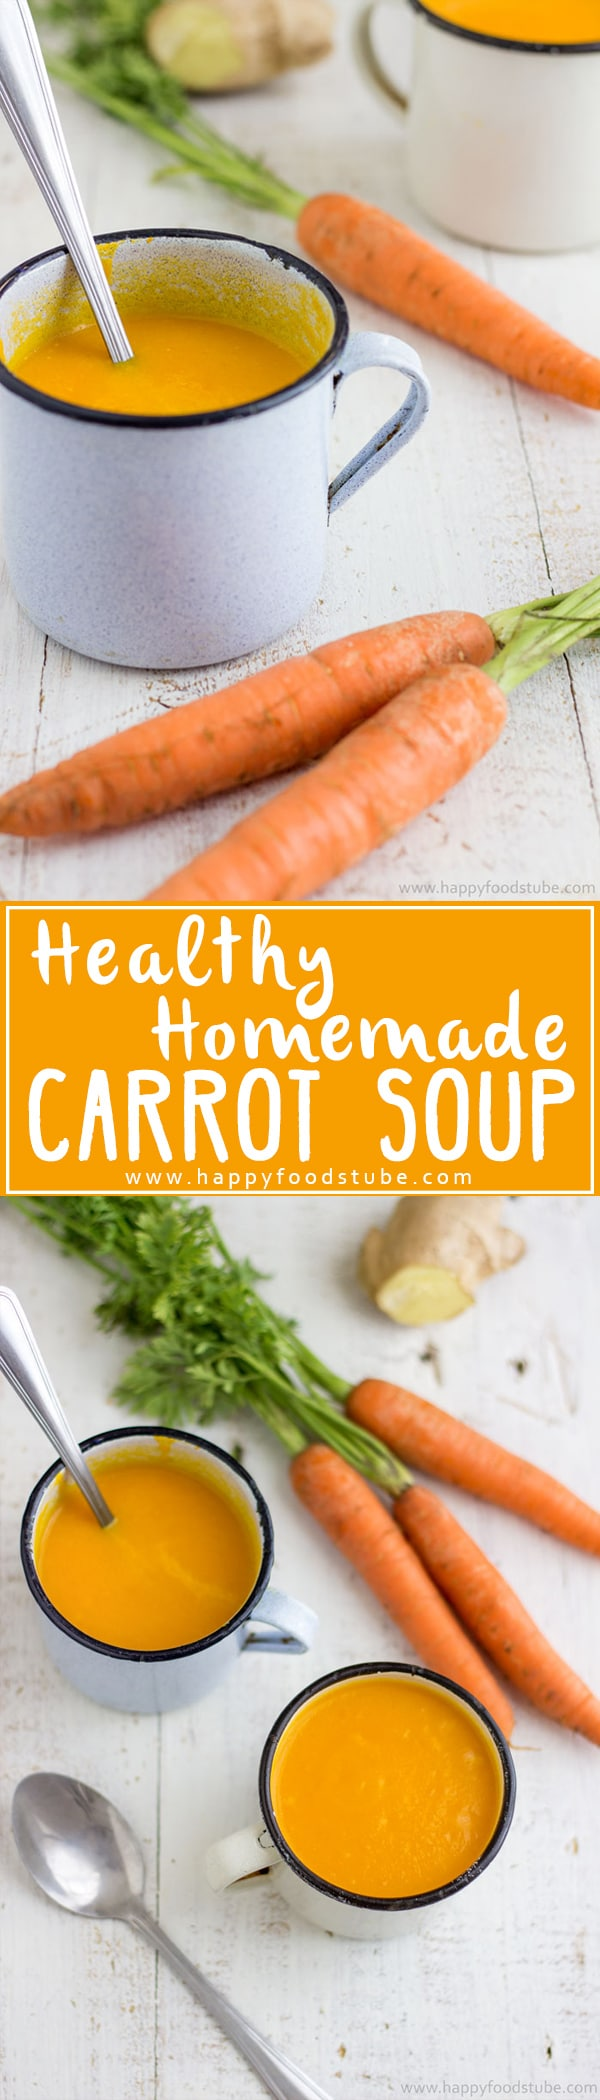 Homemade Healthy Carrot Soup with Ginger. It's creamy, sweet and rich in antioxidants! Only 5 ingredients and ready in 30 minutes. Easy vegetarian soup recipe